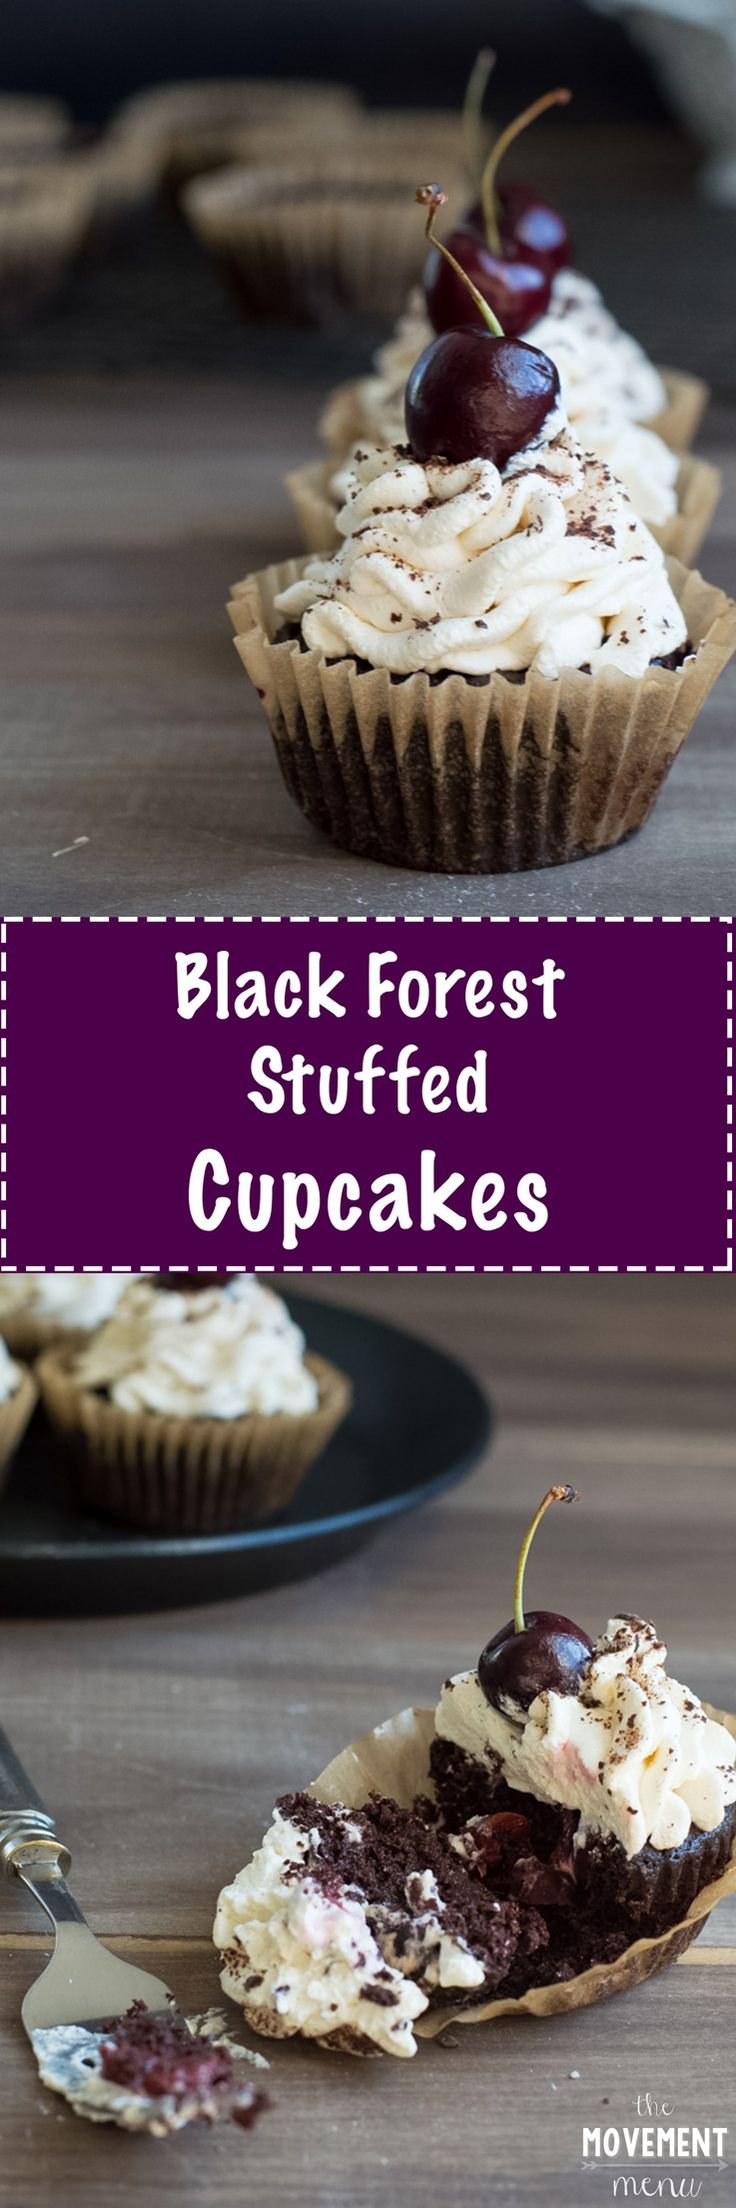 This Black Forest Cupcakes recipe is absolutely to-die-for. They are stuffed with a homemade cherry filling and topped off with fresh whipped cream!